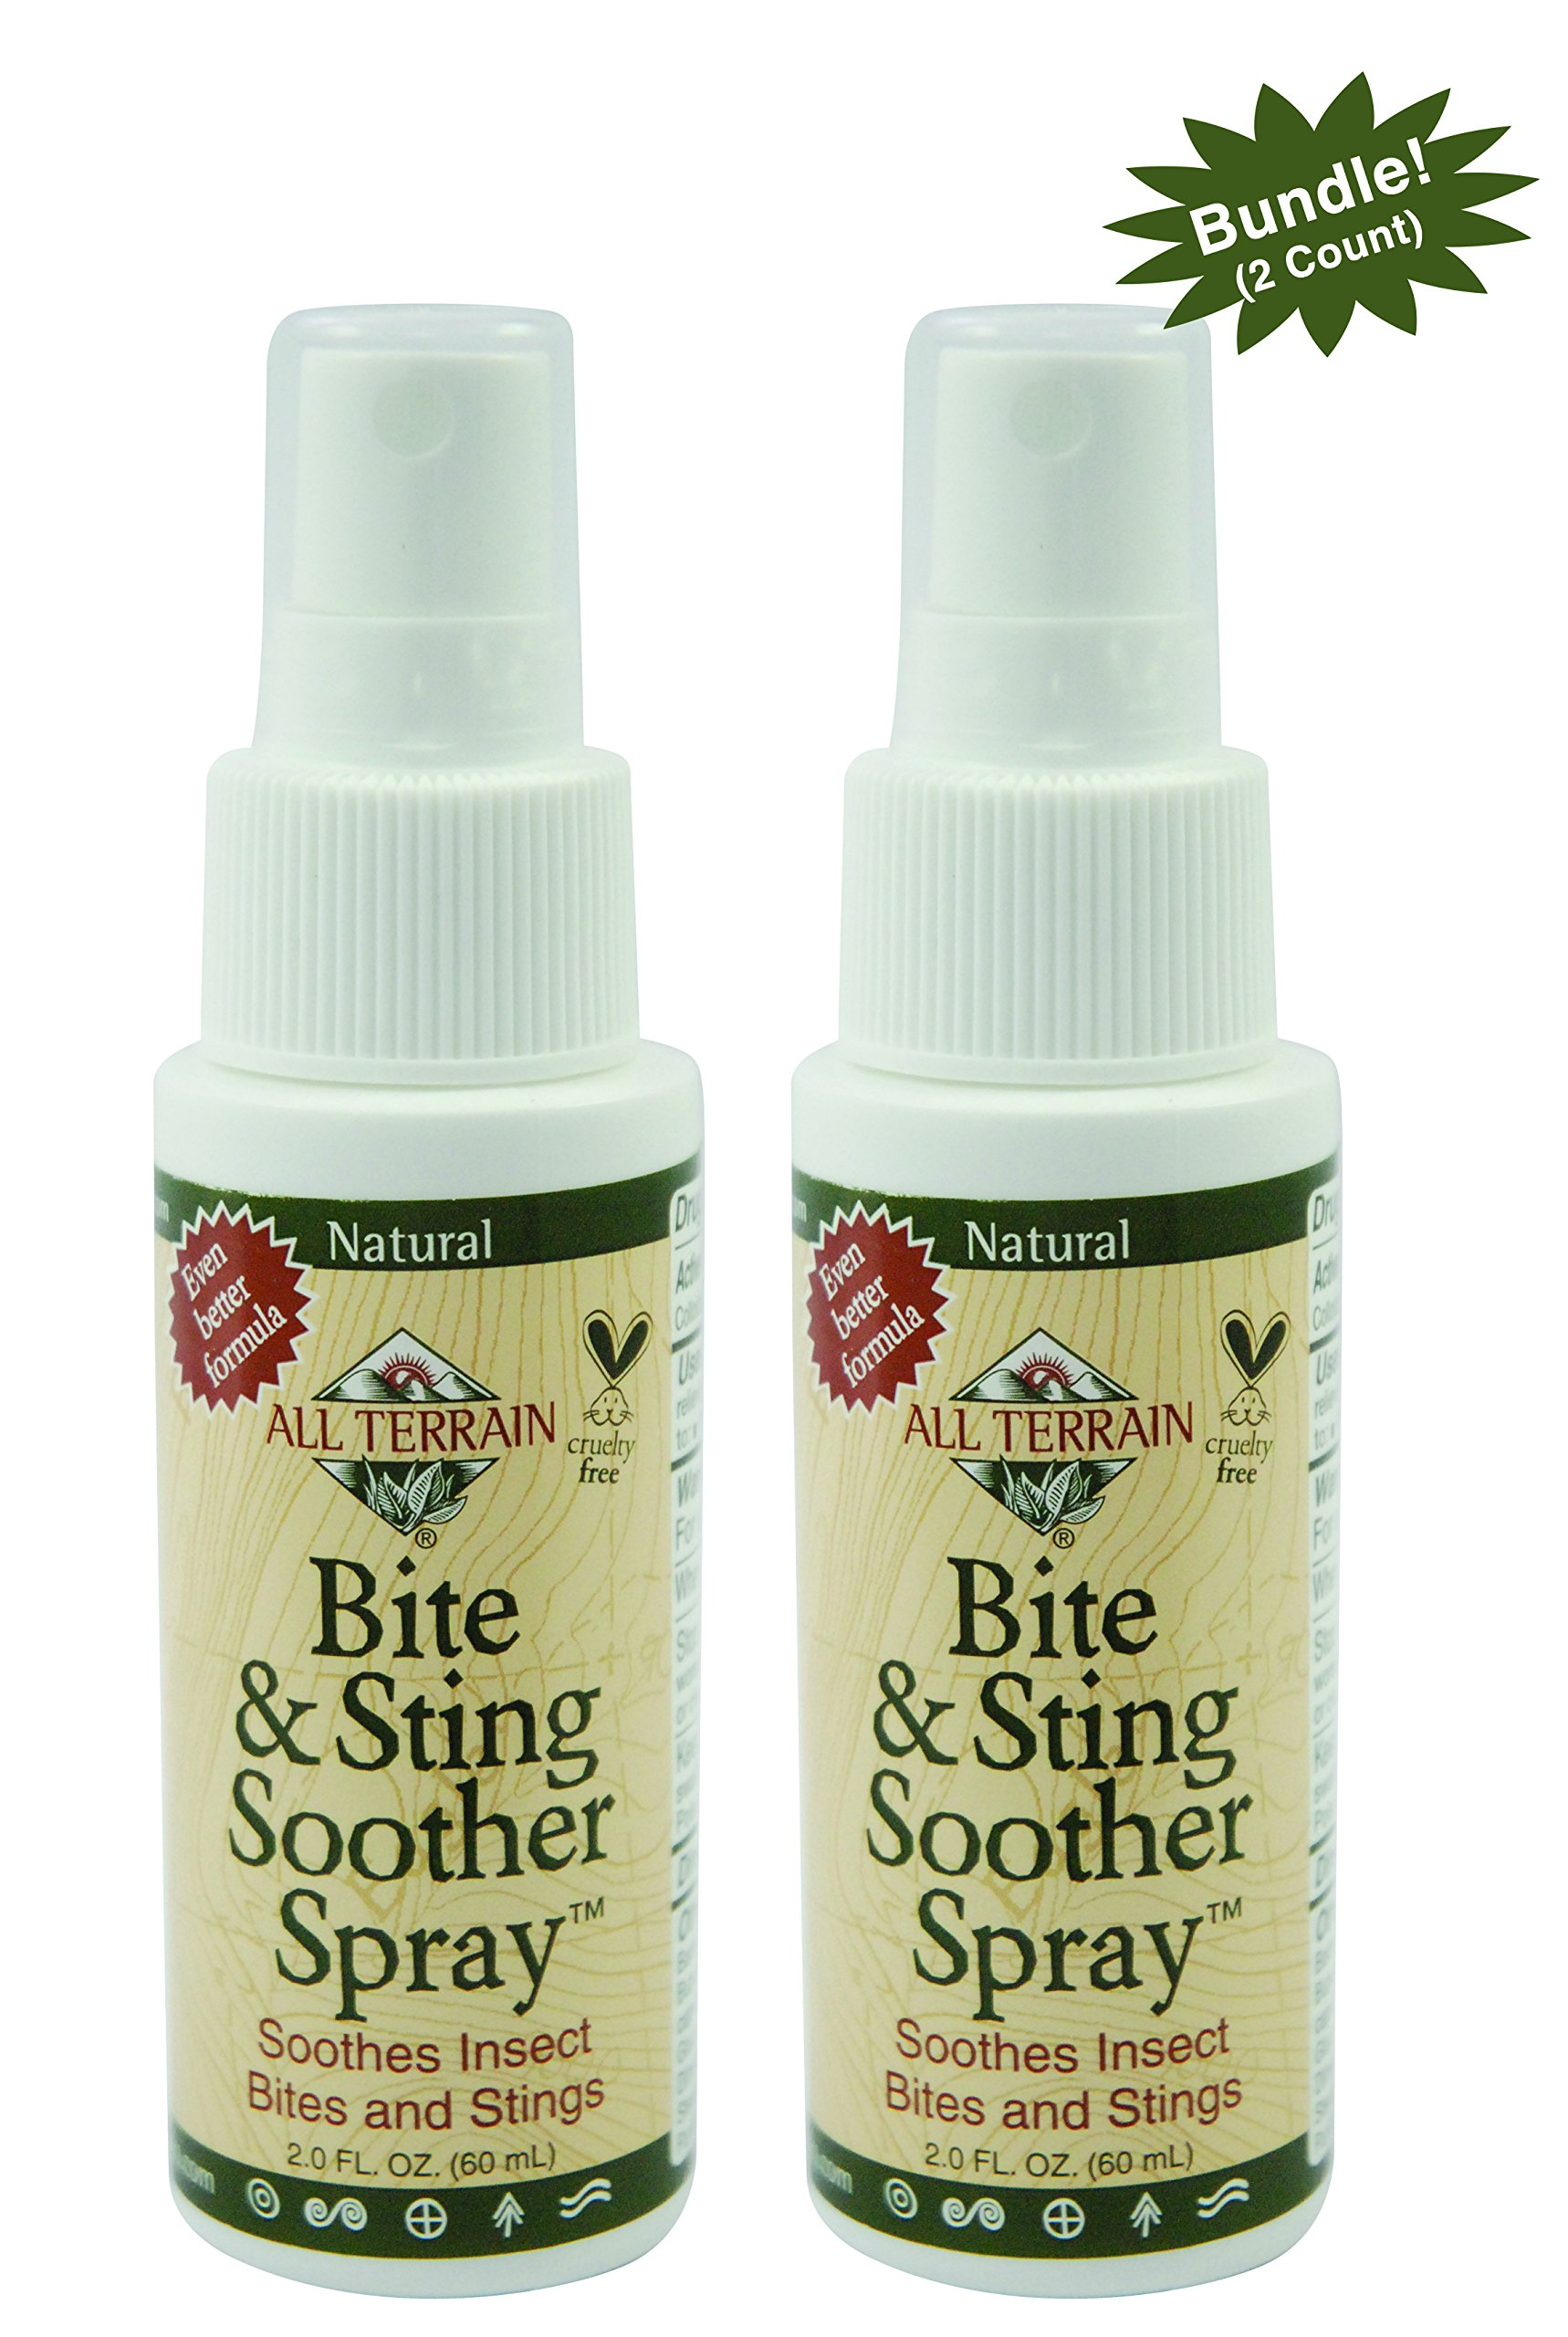 All Terrain Bite & Sting Soother 2 oz, 2 Count, Bundle by All Terrain